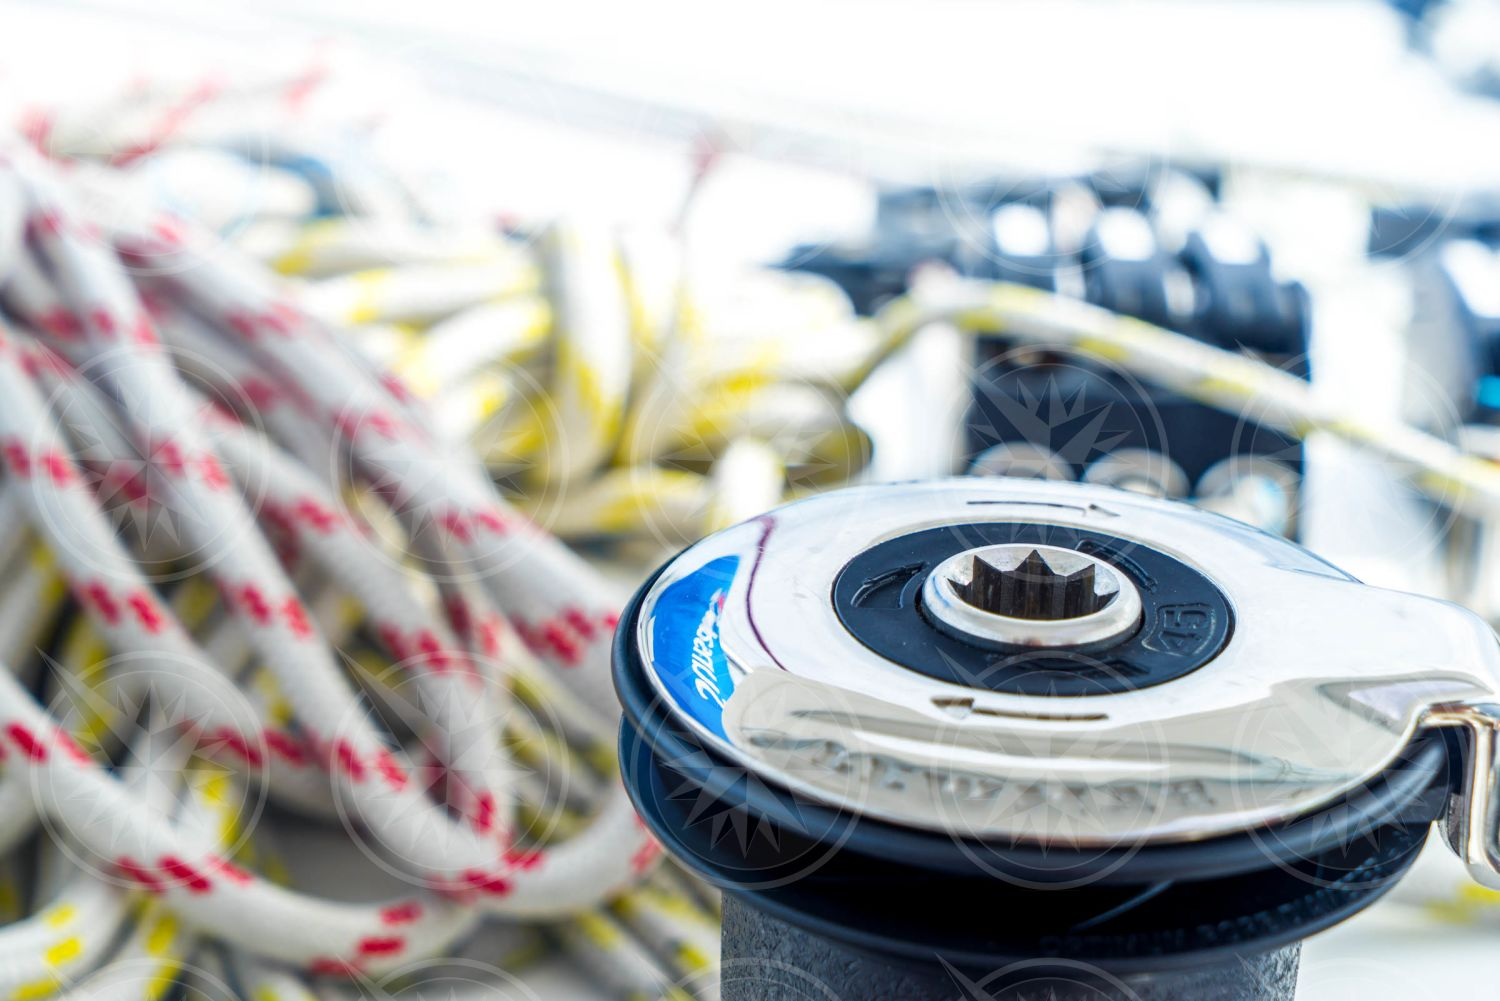 Sailing winch and lines